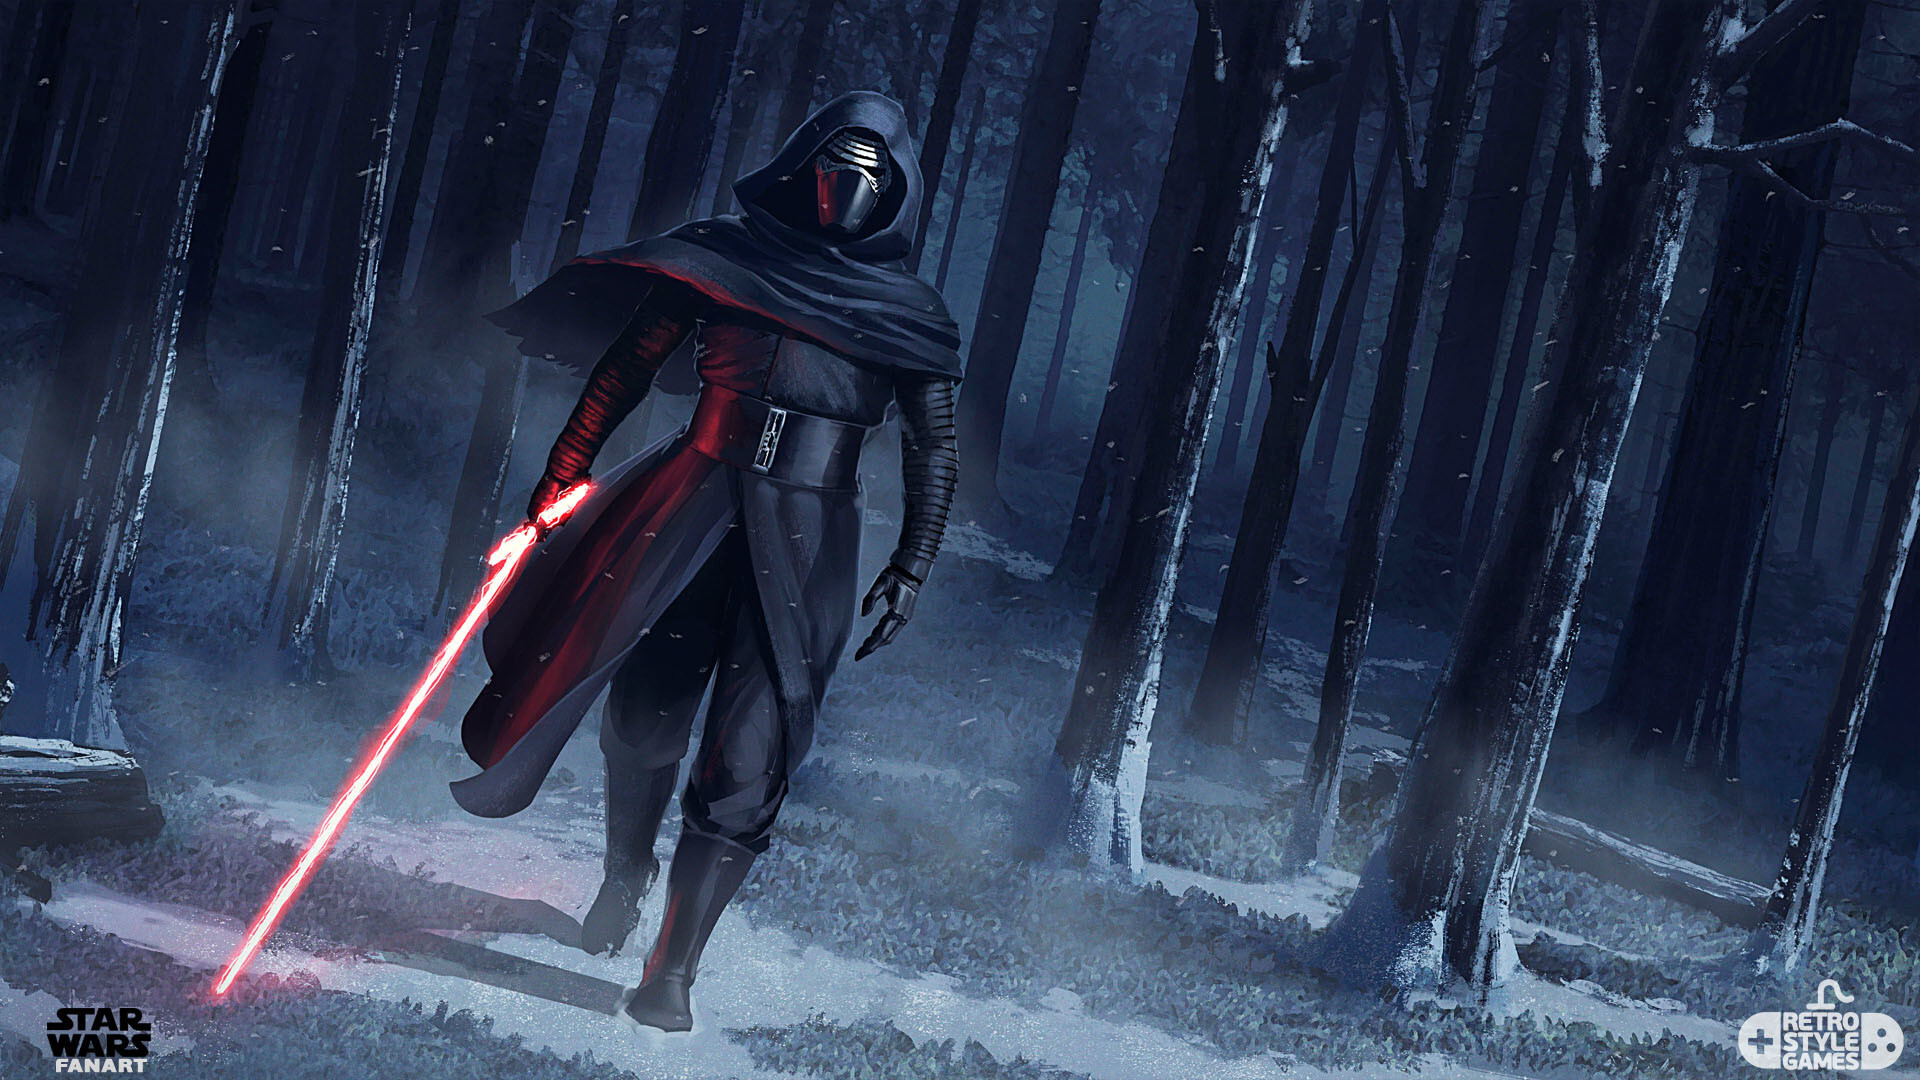 1920x1080 Kylo Ren Force Awakens Fan Art Laptop Full Hd 1080p Hd 4k Wallpapers Images Backgrounds Photos And Pictures